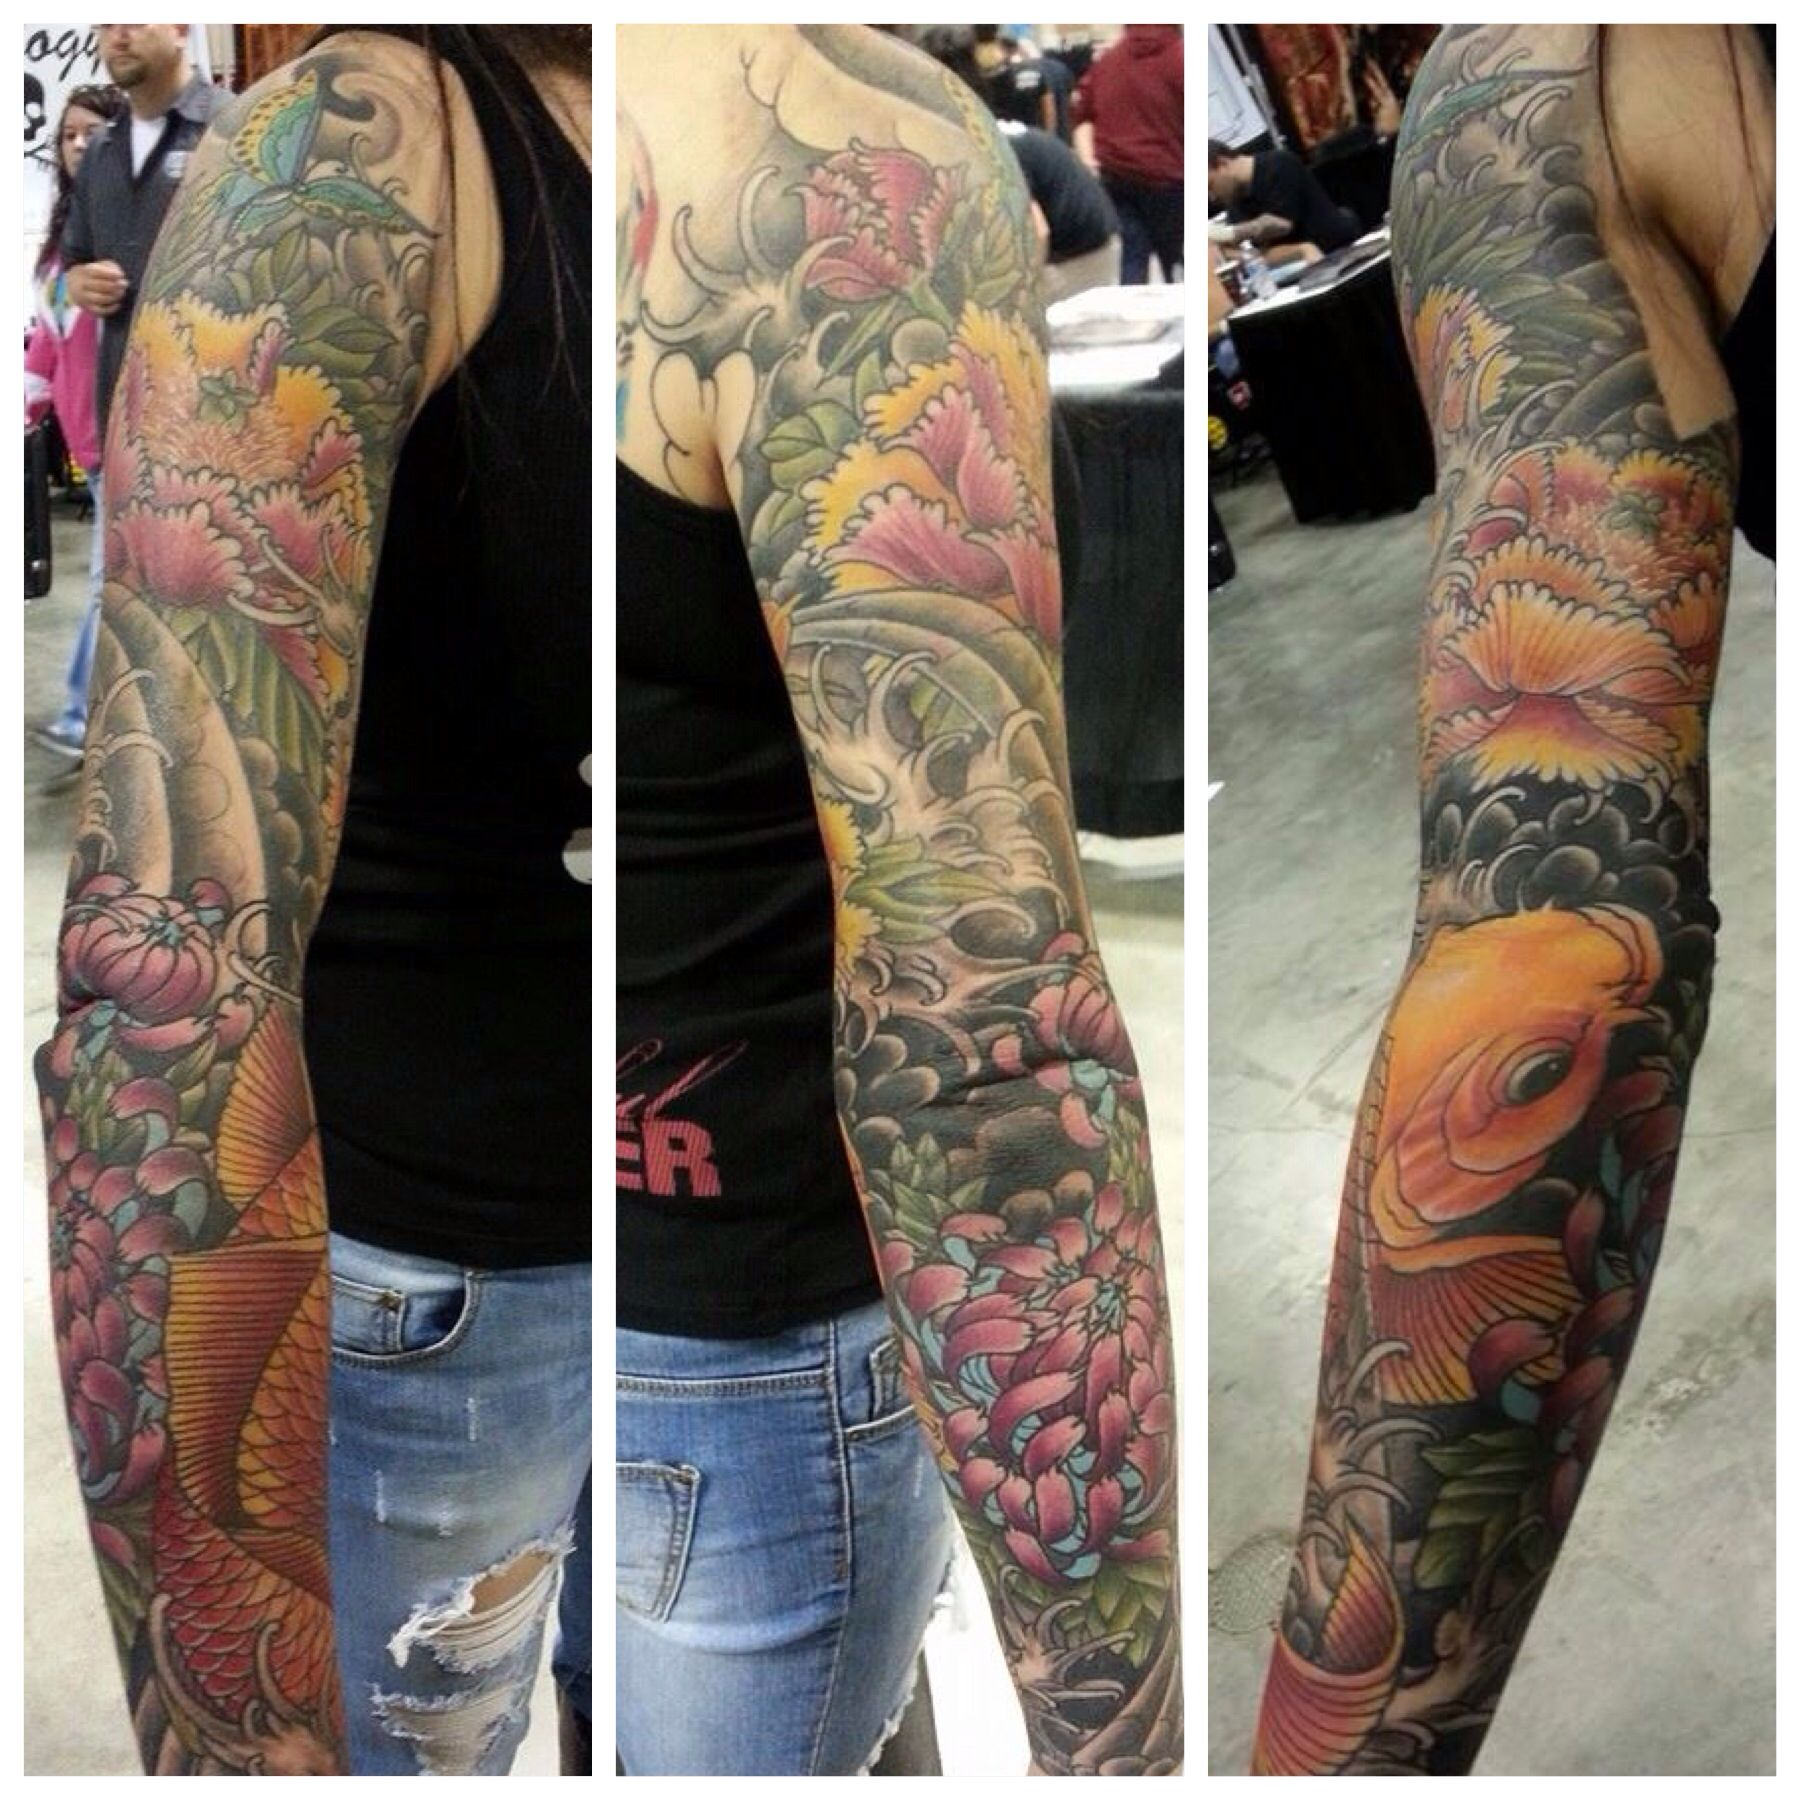 Full Asian traditional, floral, koi fish tattoo sleeve